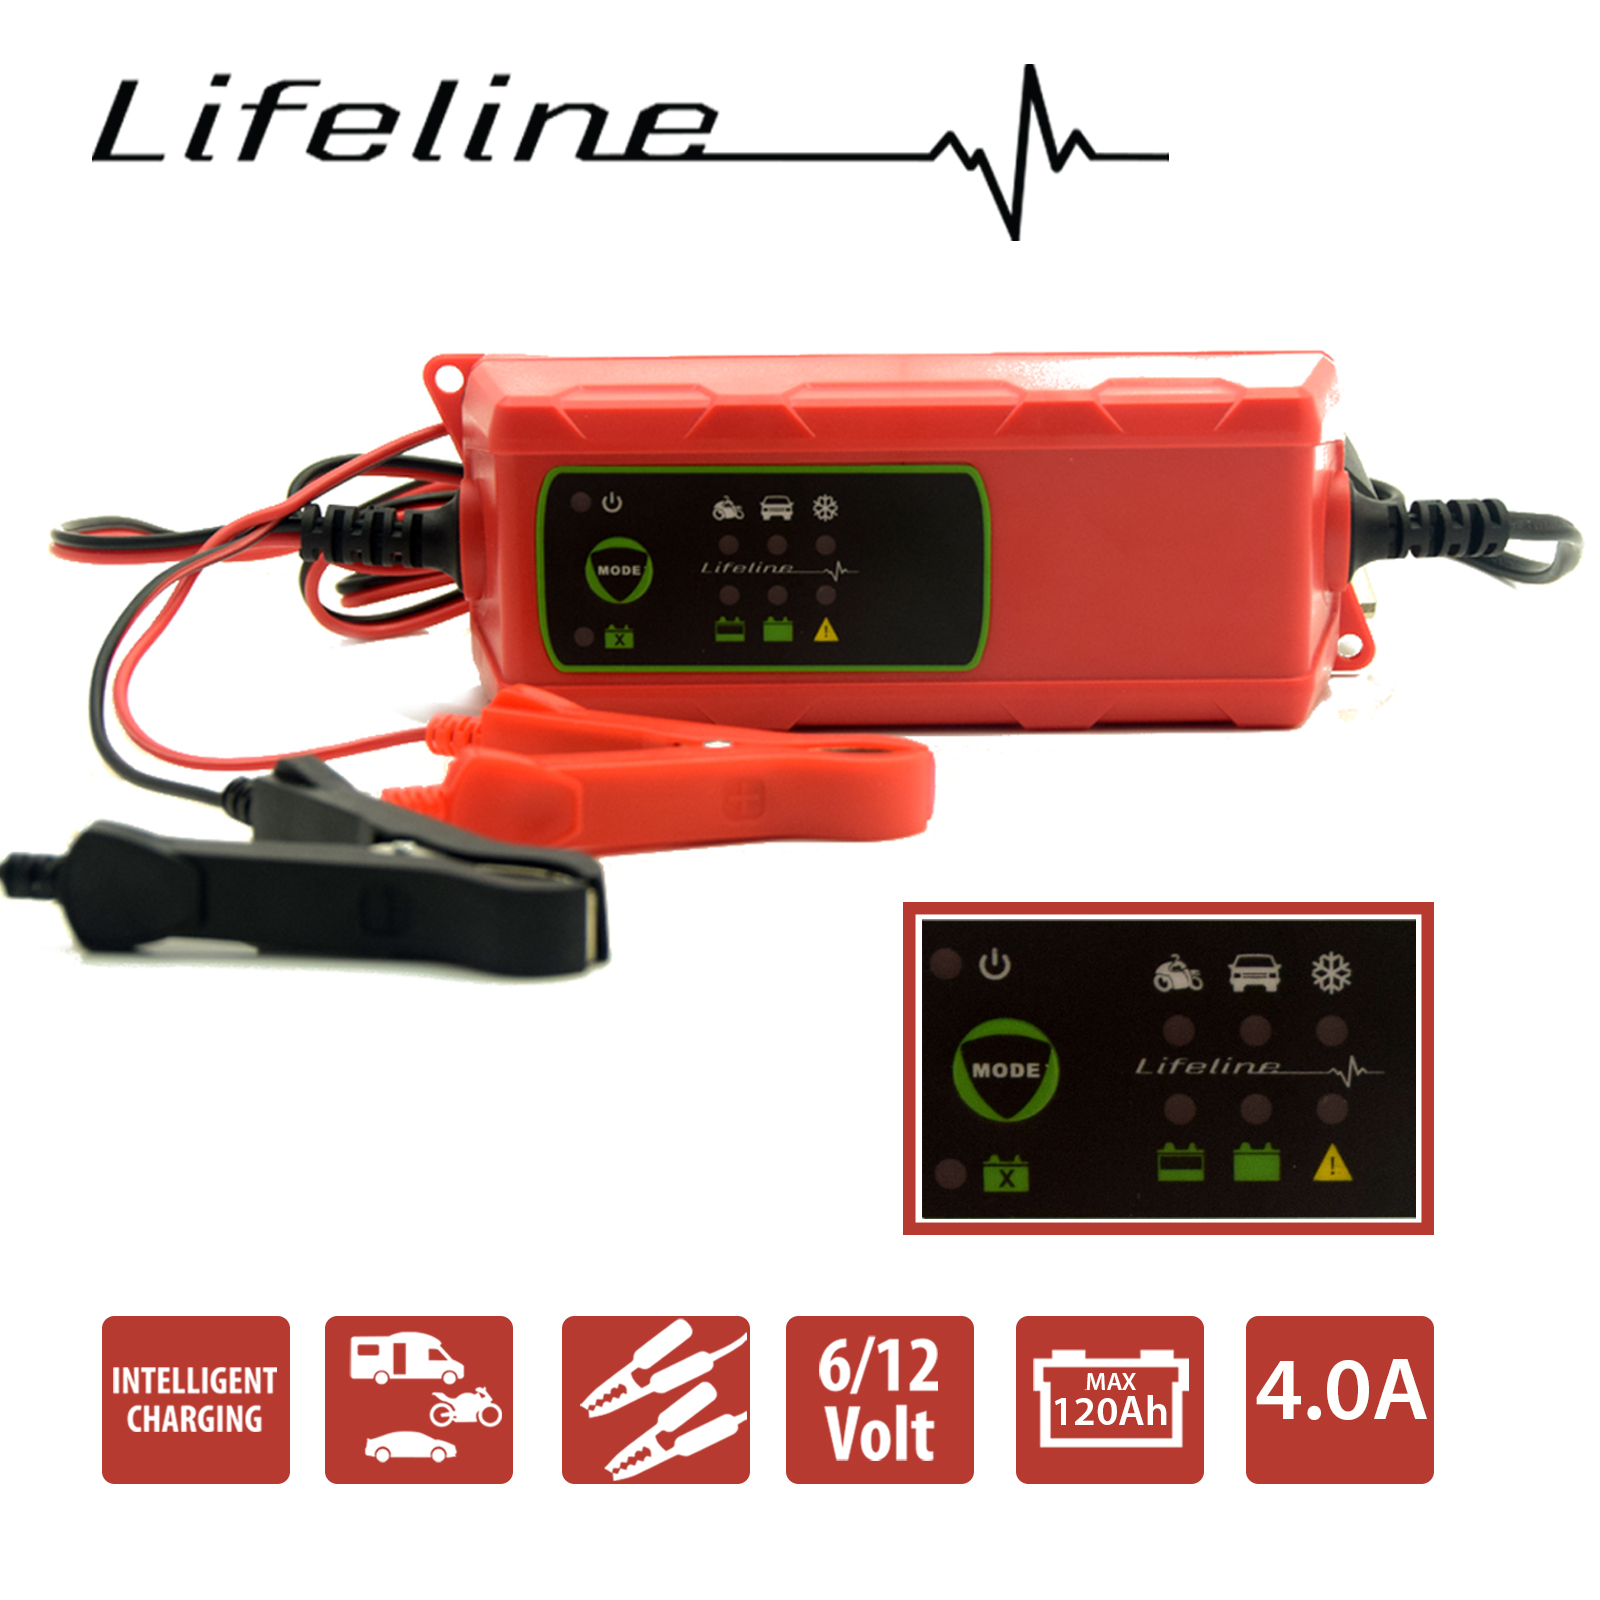 sparkrite battery charger instructions